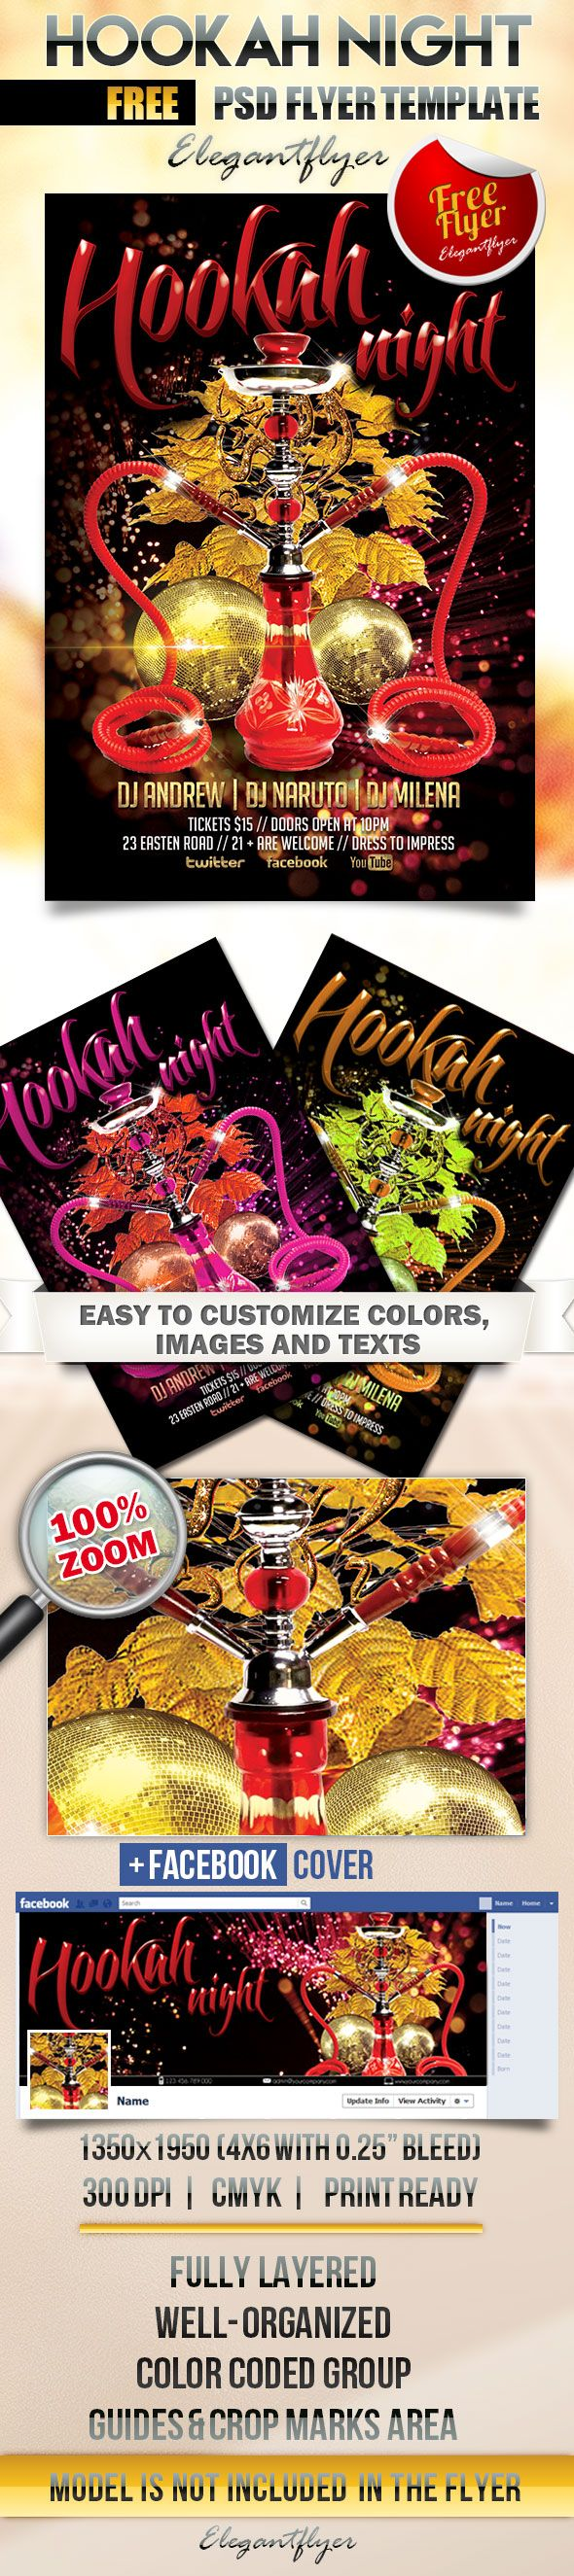 best images about psd flyer design  hookah night flyer psd template facebook cover